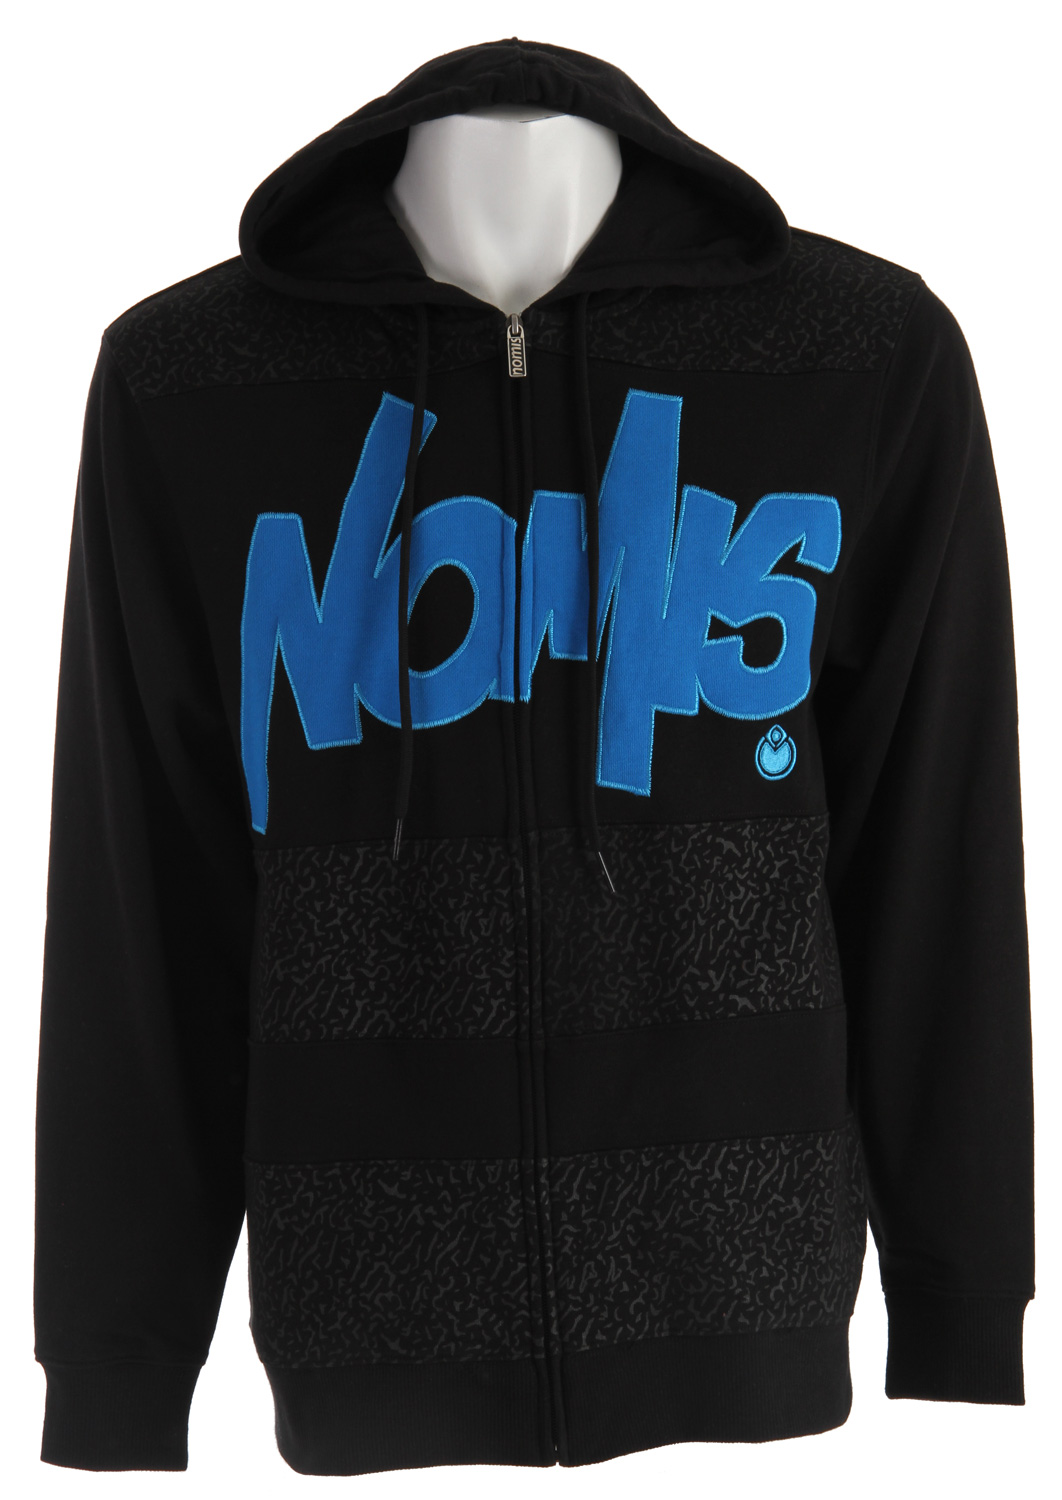 Snowboard This Nomis Tony hoodie is a great hoodie on and off the slopes. The hoodie is made of a warm 60%-40% cotton polyester blend fleece. It is great to wear spring snowboarding and to wear around to show off your snowboarding style. The hoodie has a great feel and a great cut. It is just the right length for warmth. The hoodie is roomy but not oversized. The Nomis Tony hoodie has a great look with a great name.Key Features of the Nomis Tony Hoodie: 60% cotton/40% poly fleece - $57.95